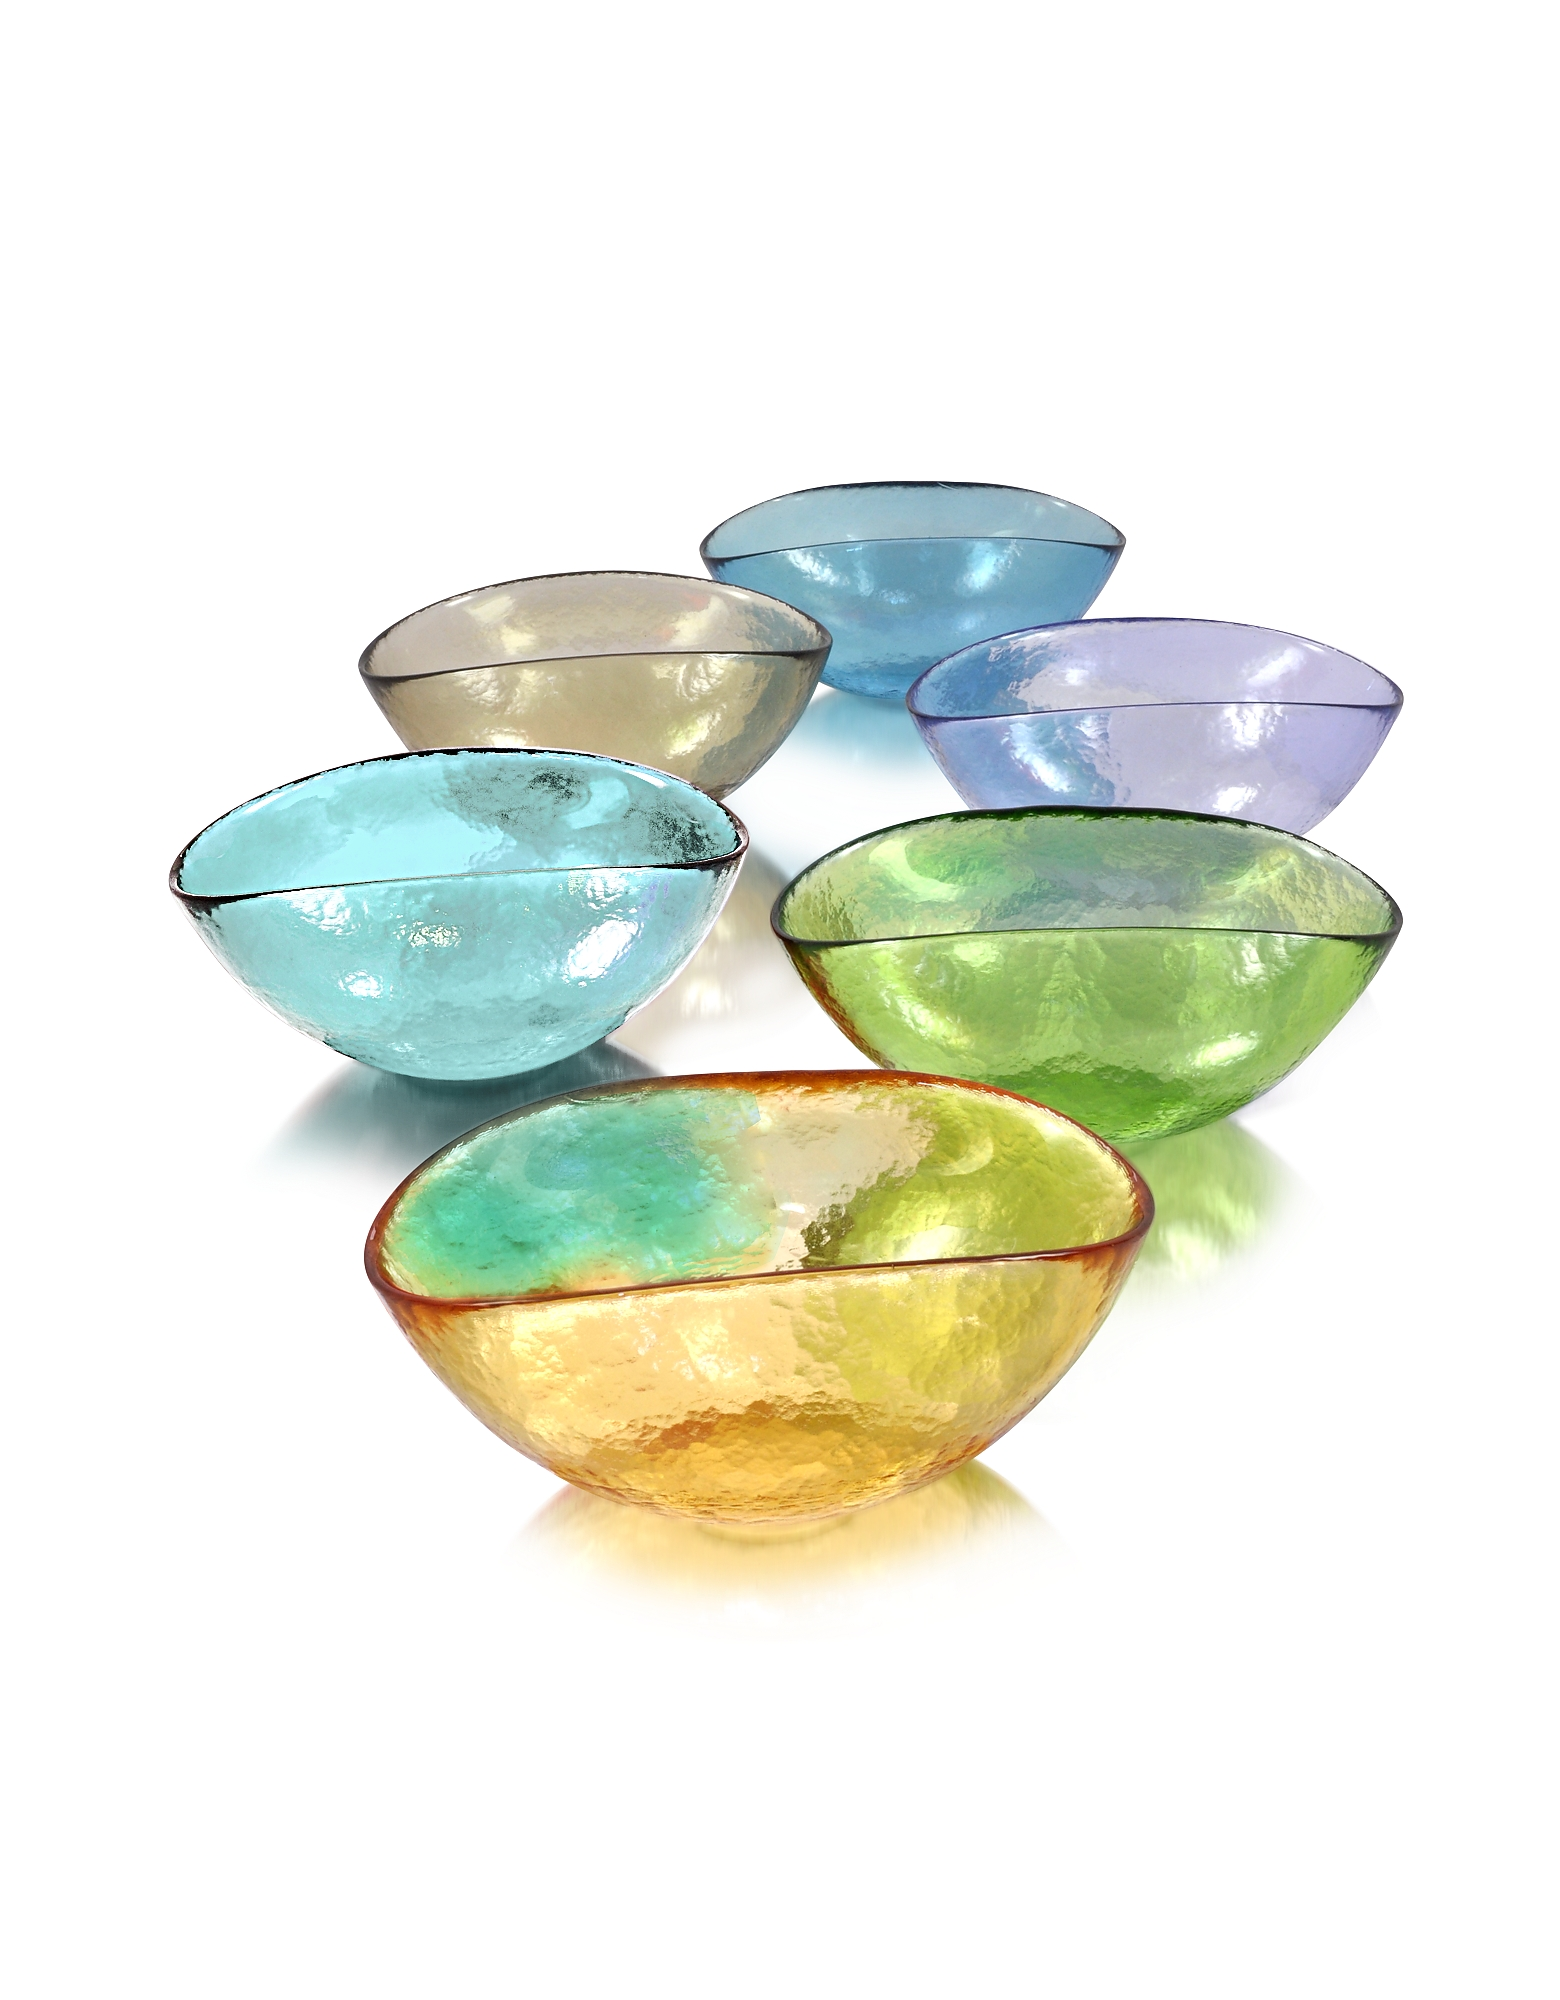 Yalos Murano Kitchen & Dining, Happy Fruit - 6 Colored Murano Glass Bowls